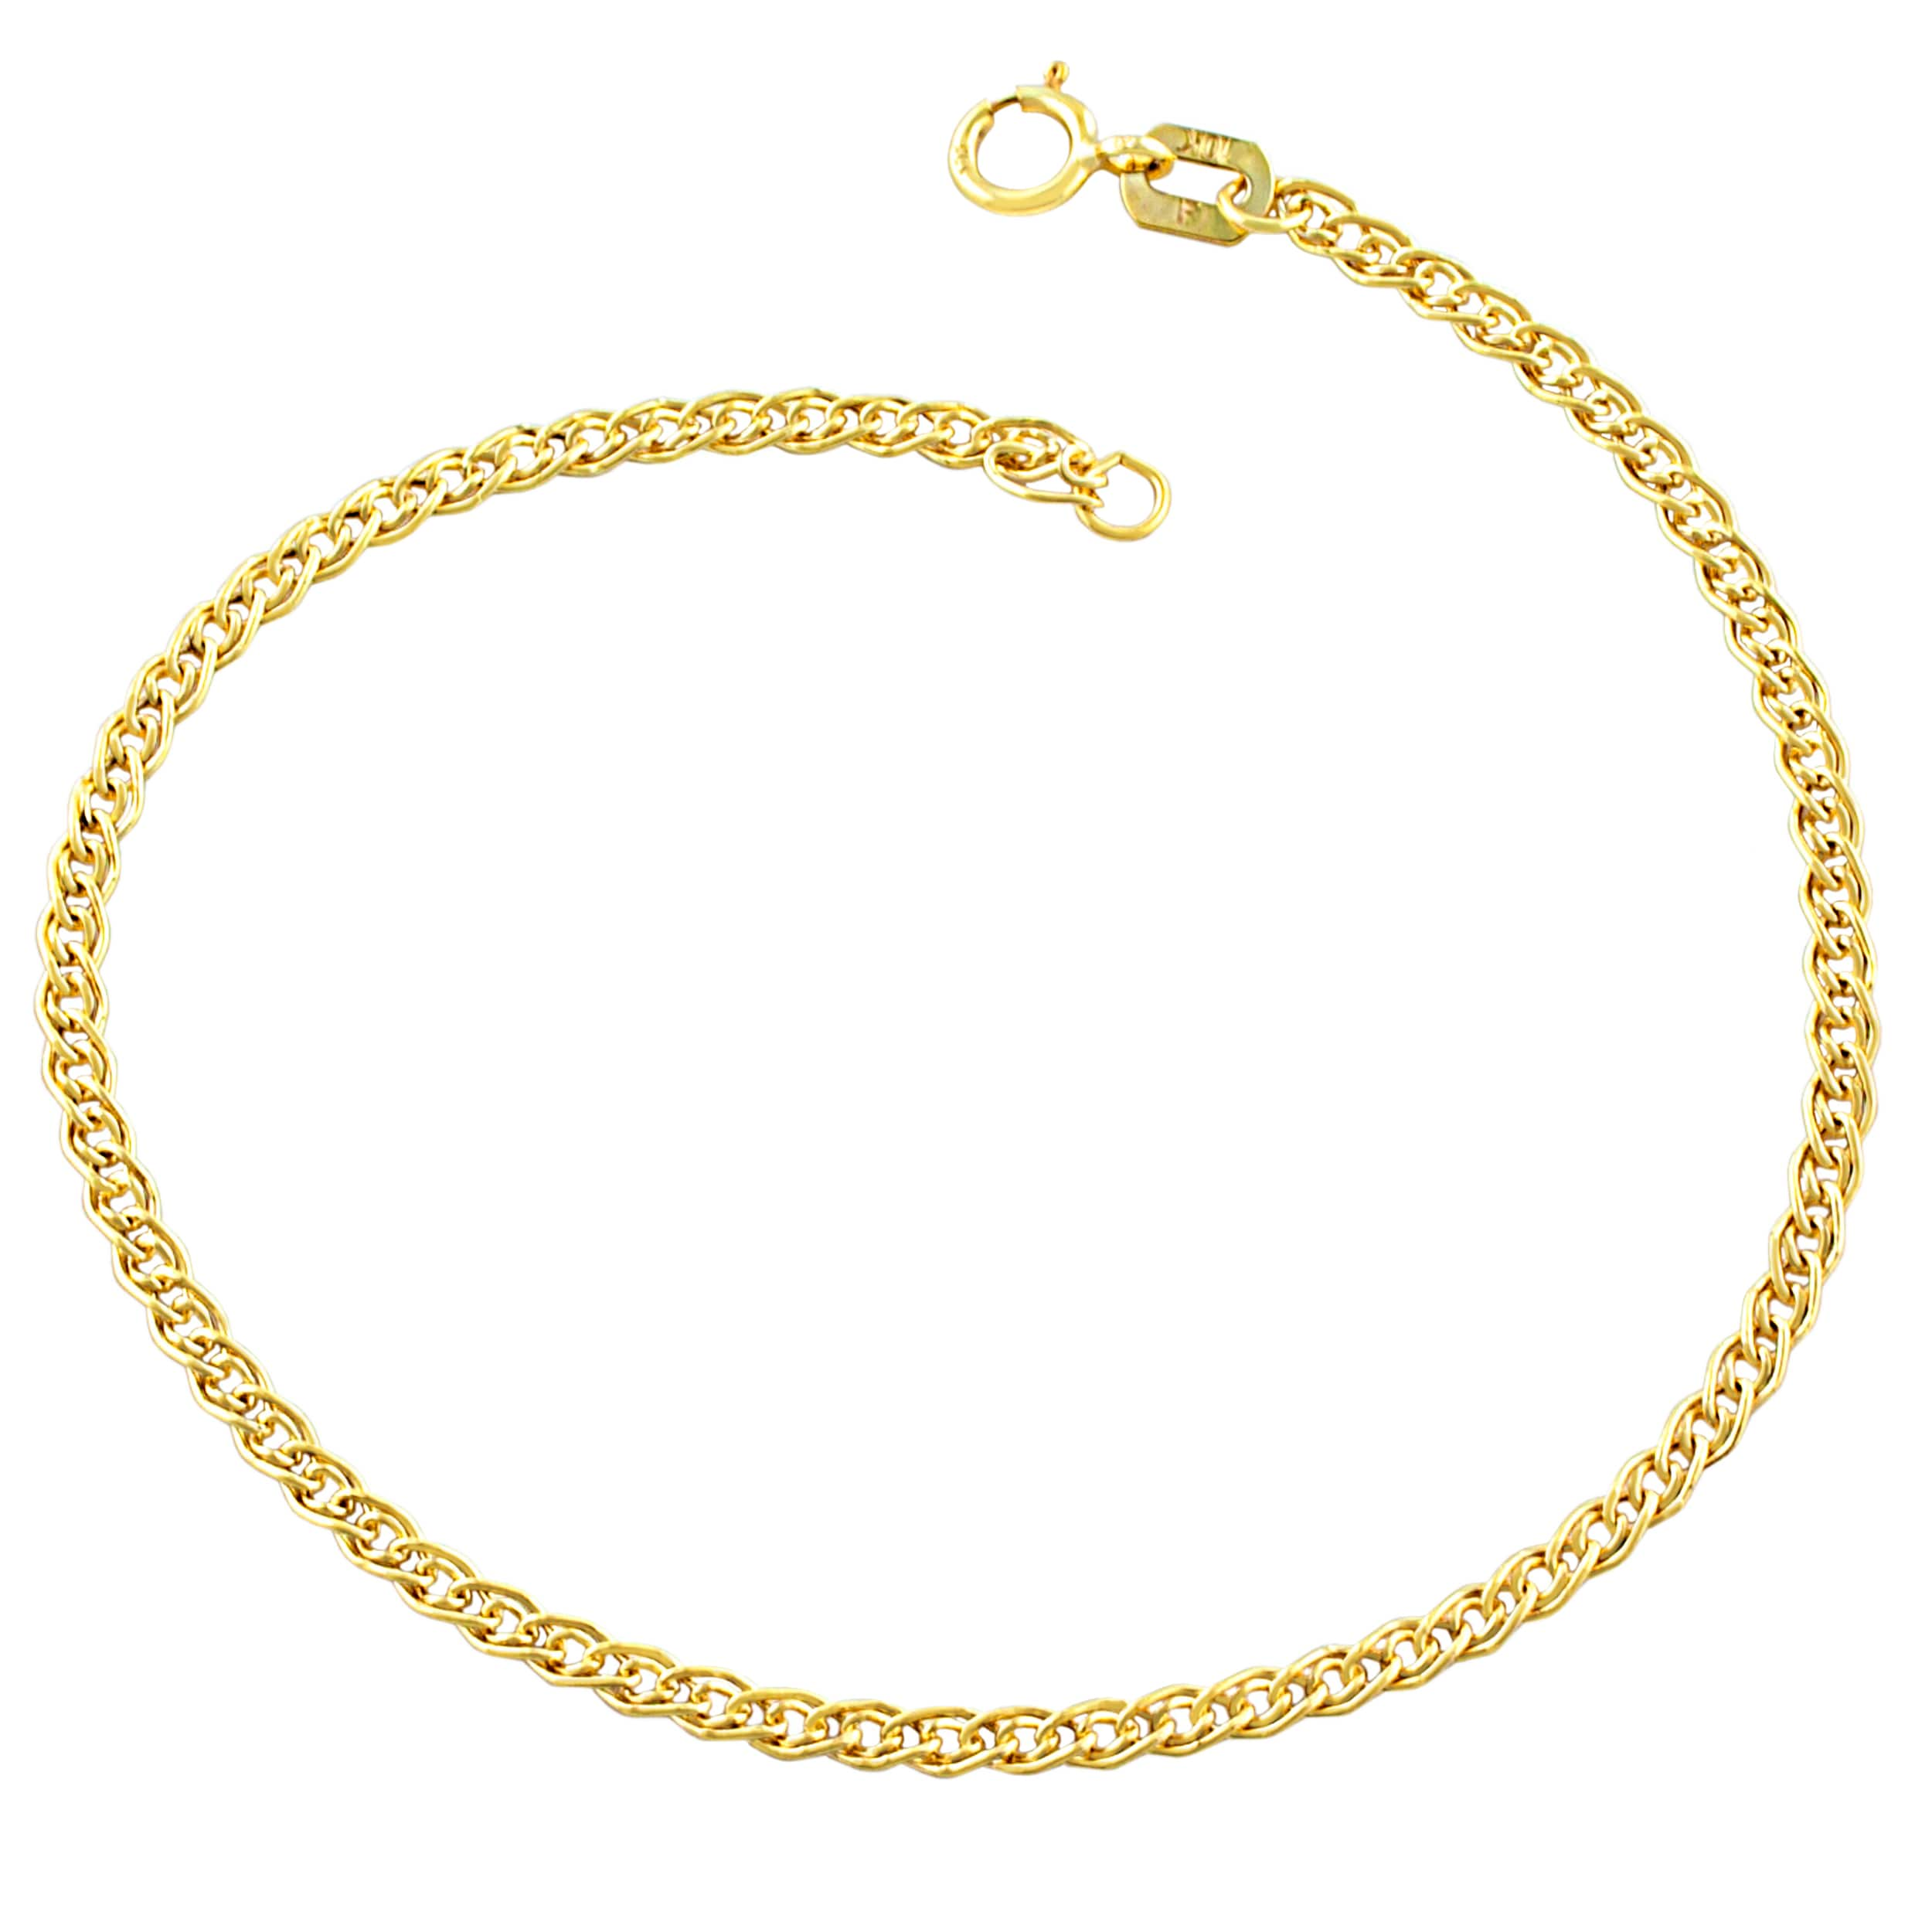 Fine Jewelry 2019 New Style 14k Two Gold Abstract Fancy Link Design Ankle Bracelet 2.8 Grams Anklet Clearance Price